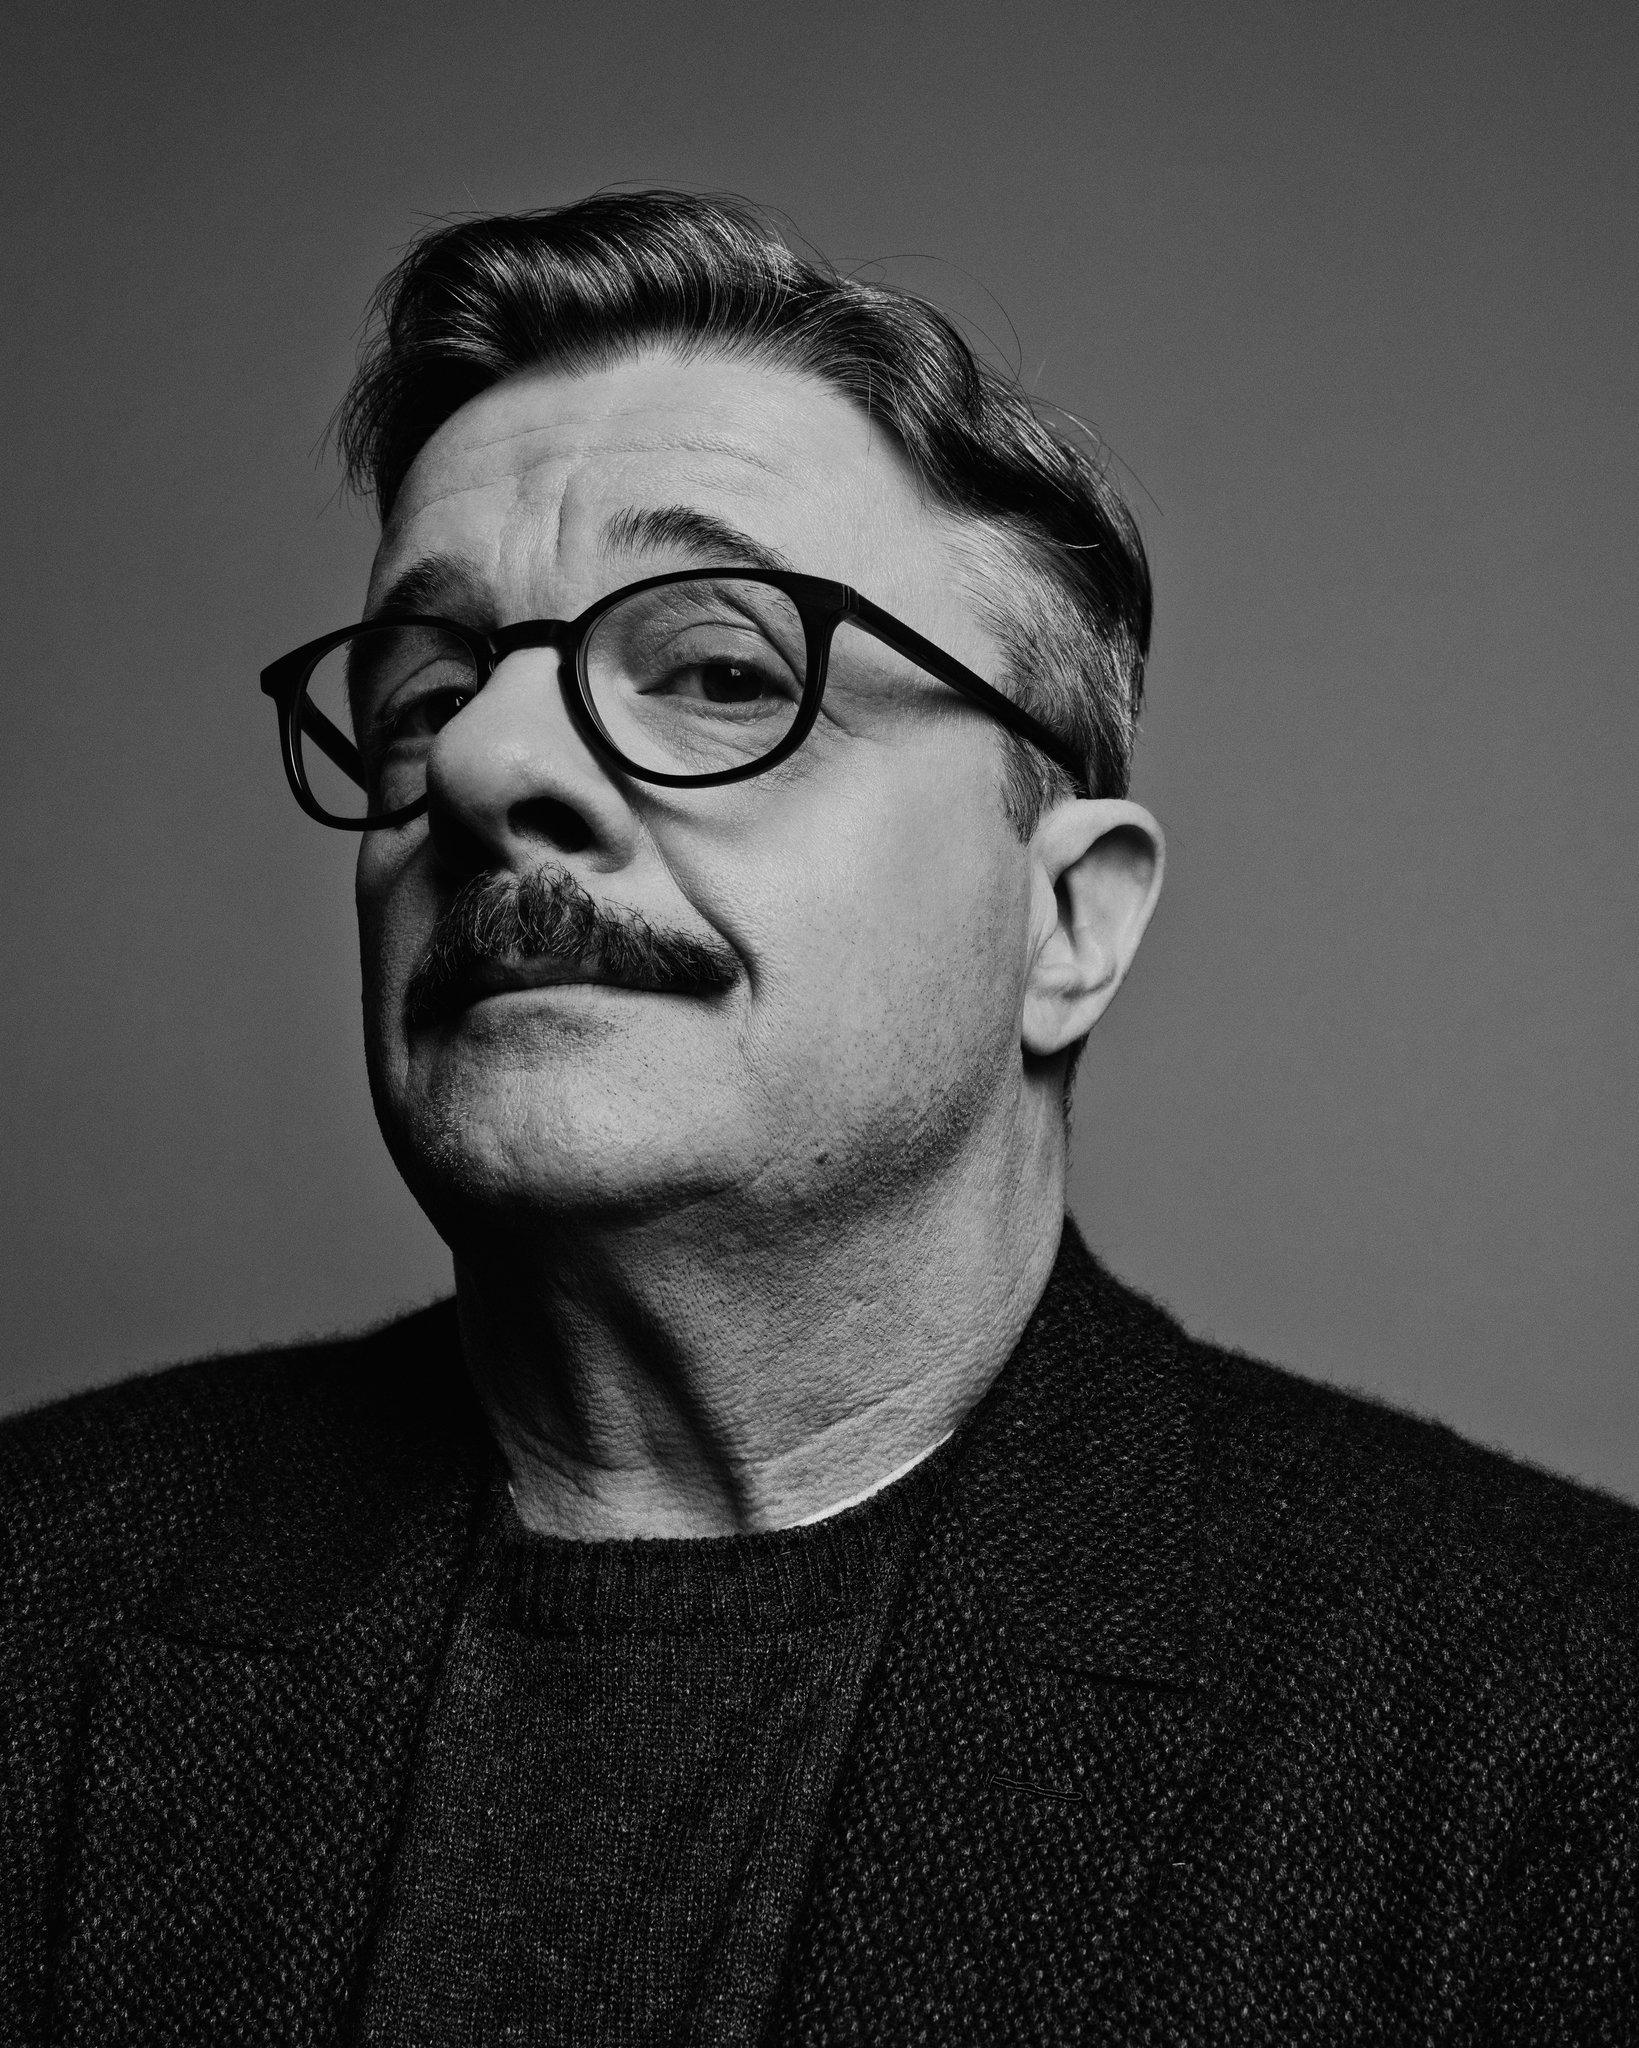 Nathan Lane by Ryan Pfluger for The New York Times;